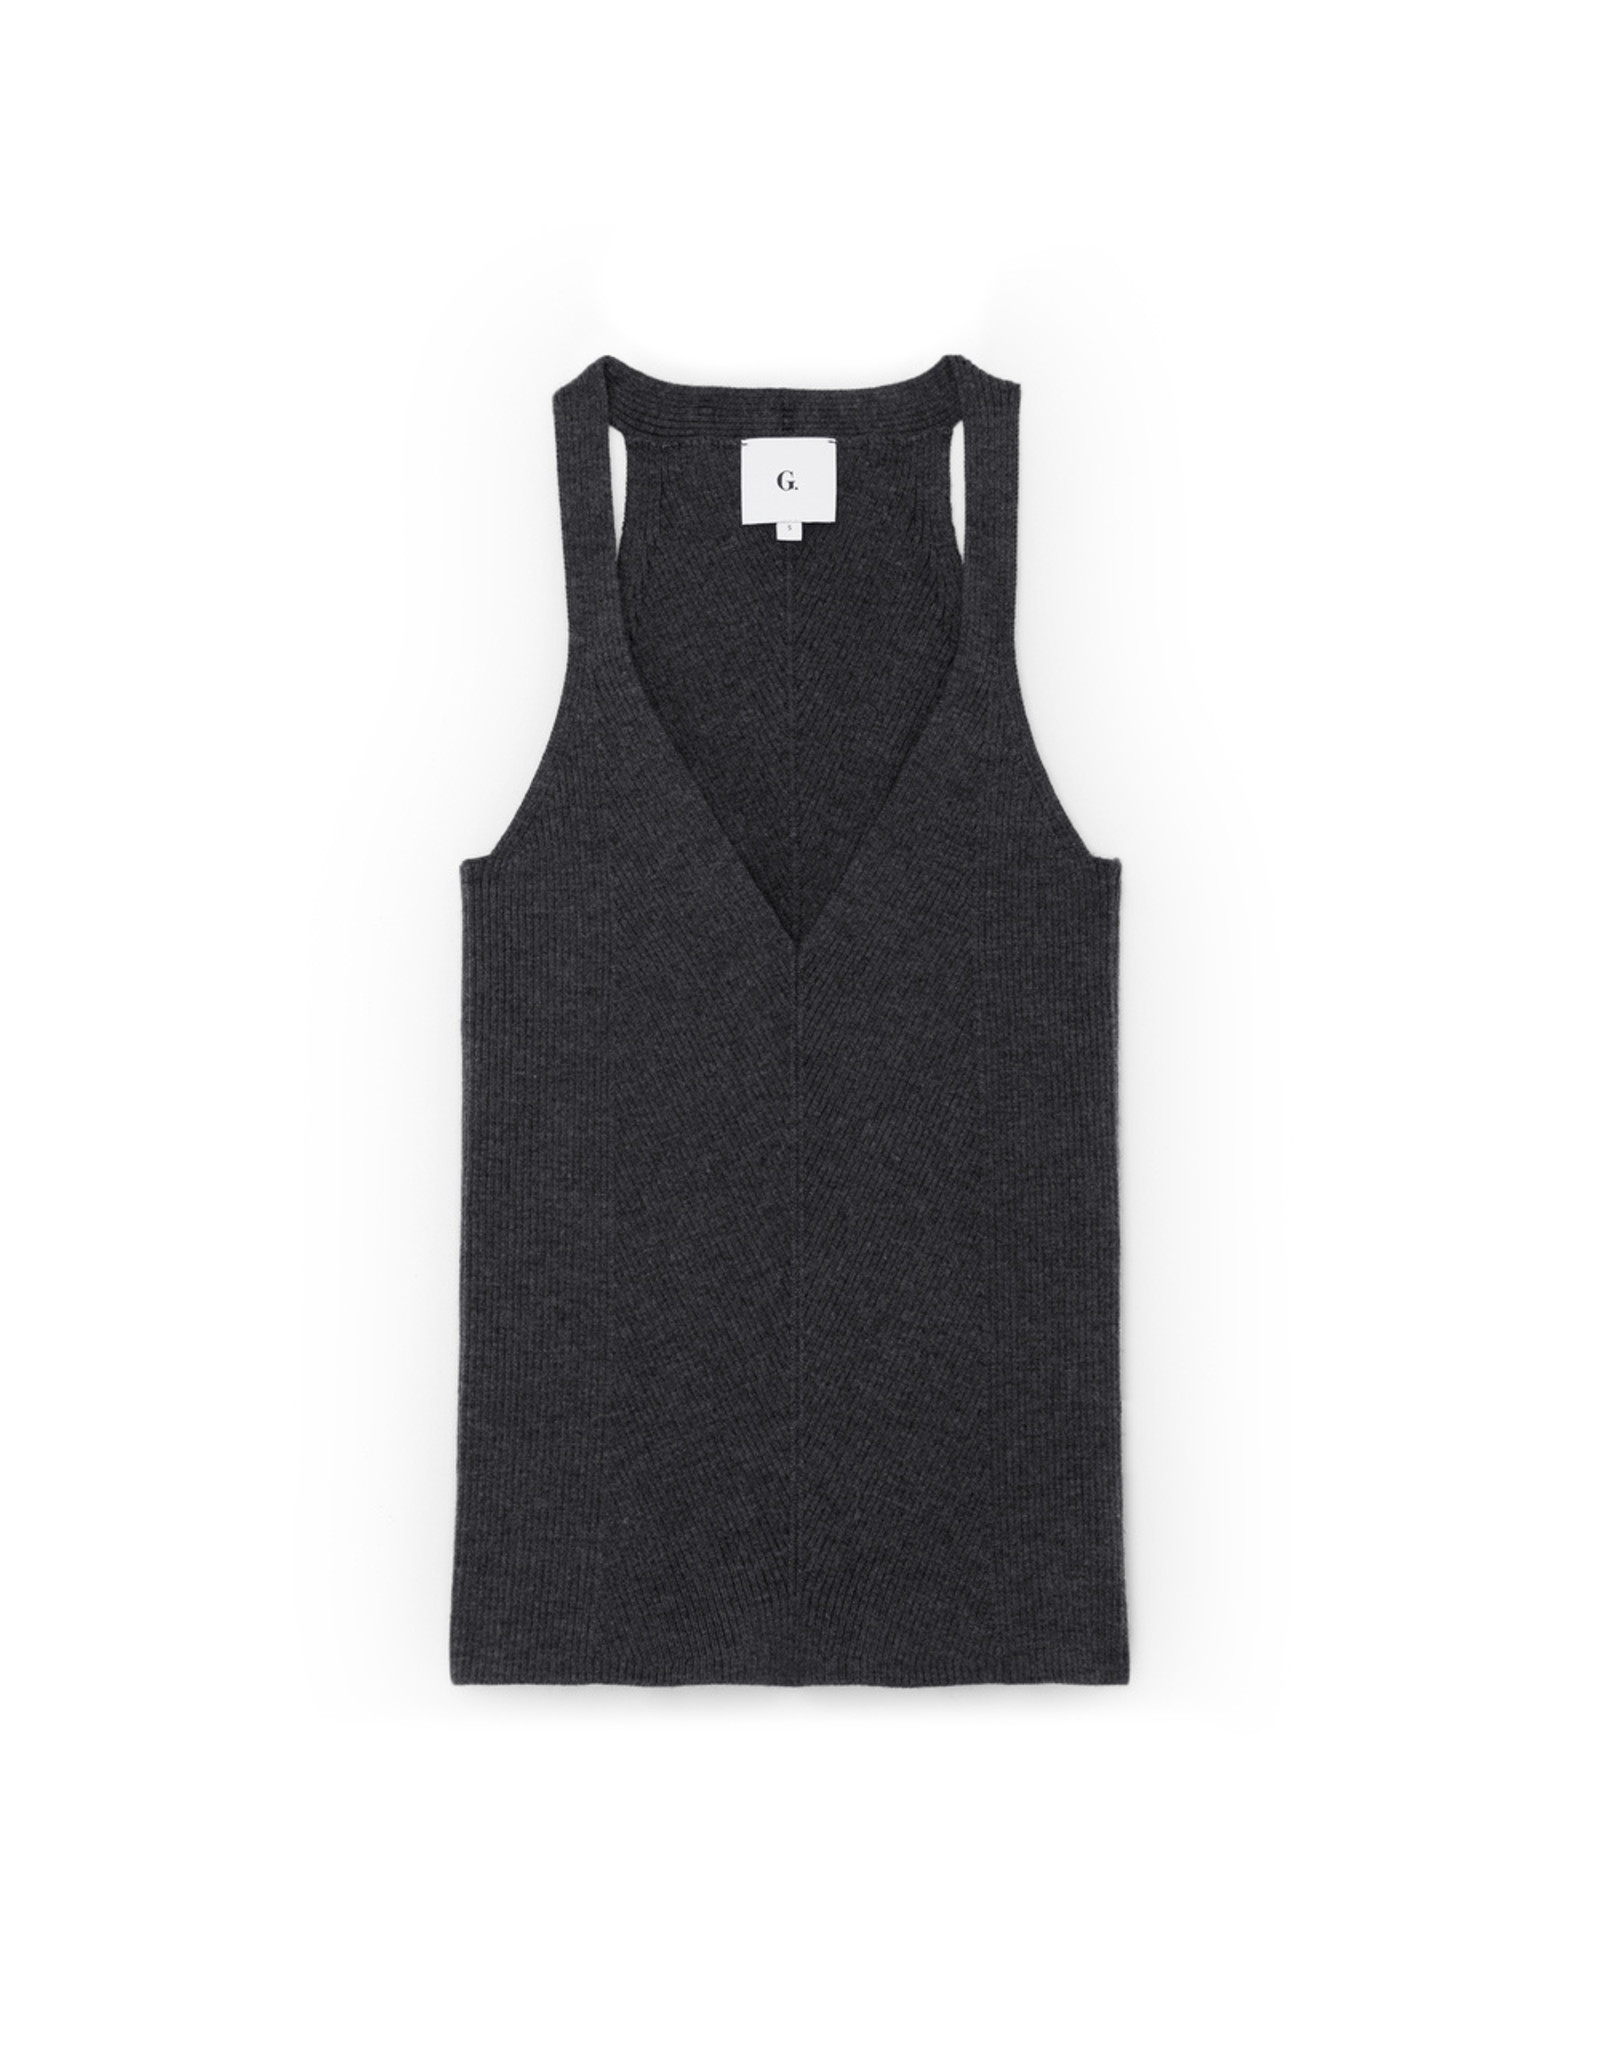 G. Label G. Label Samantha Engineered-Rib Tank (Color: Charcoal, Size: M)